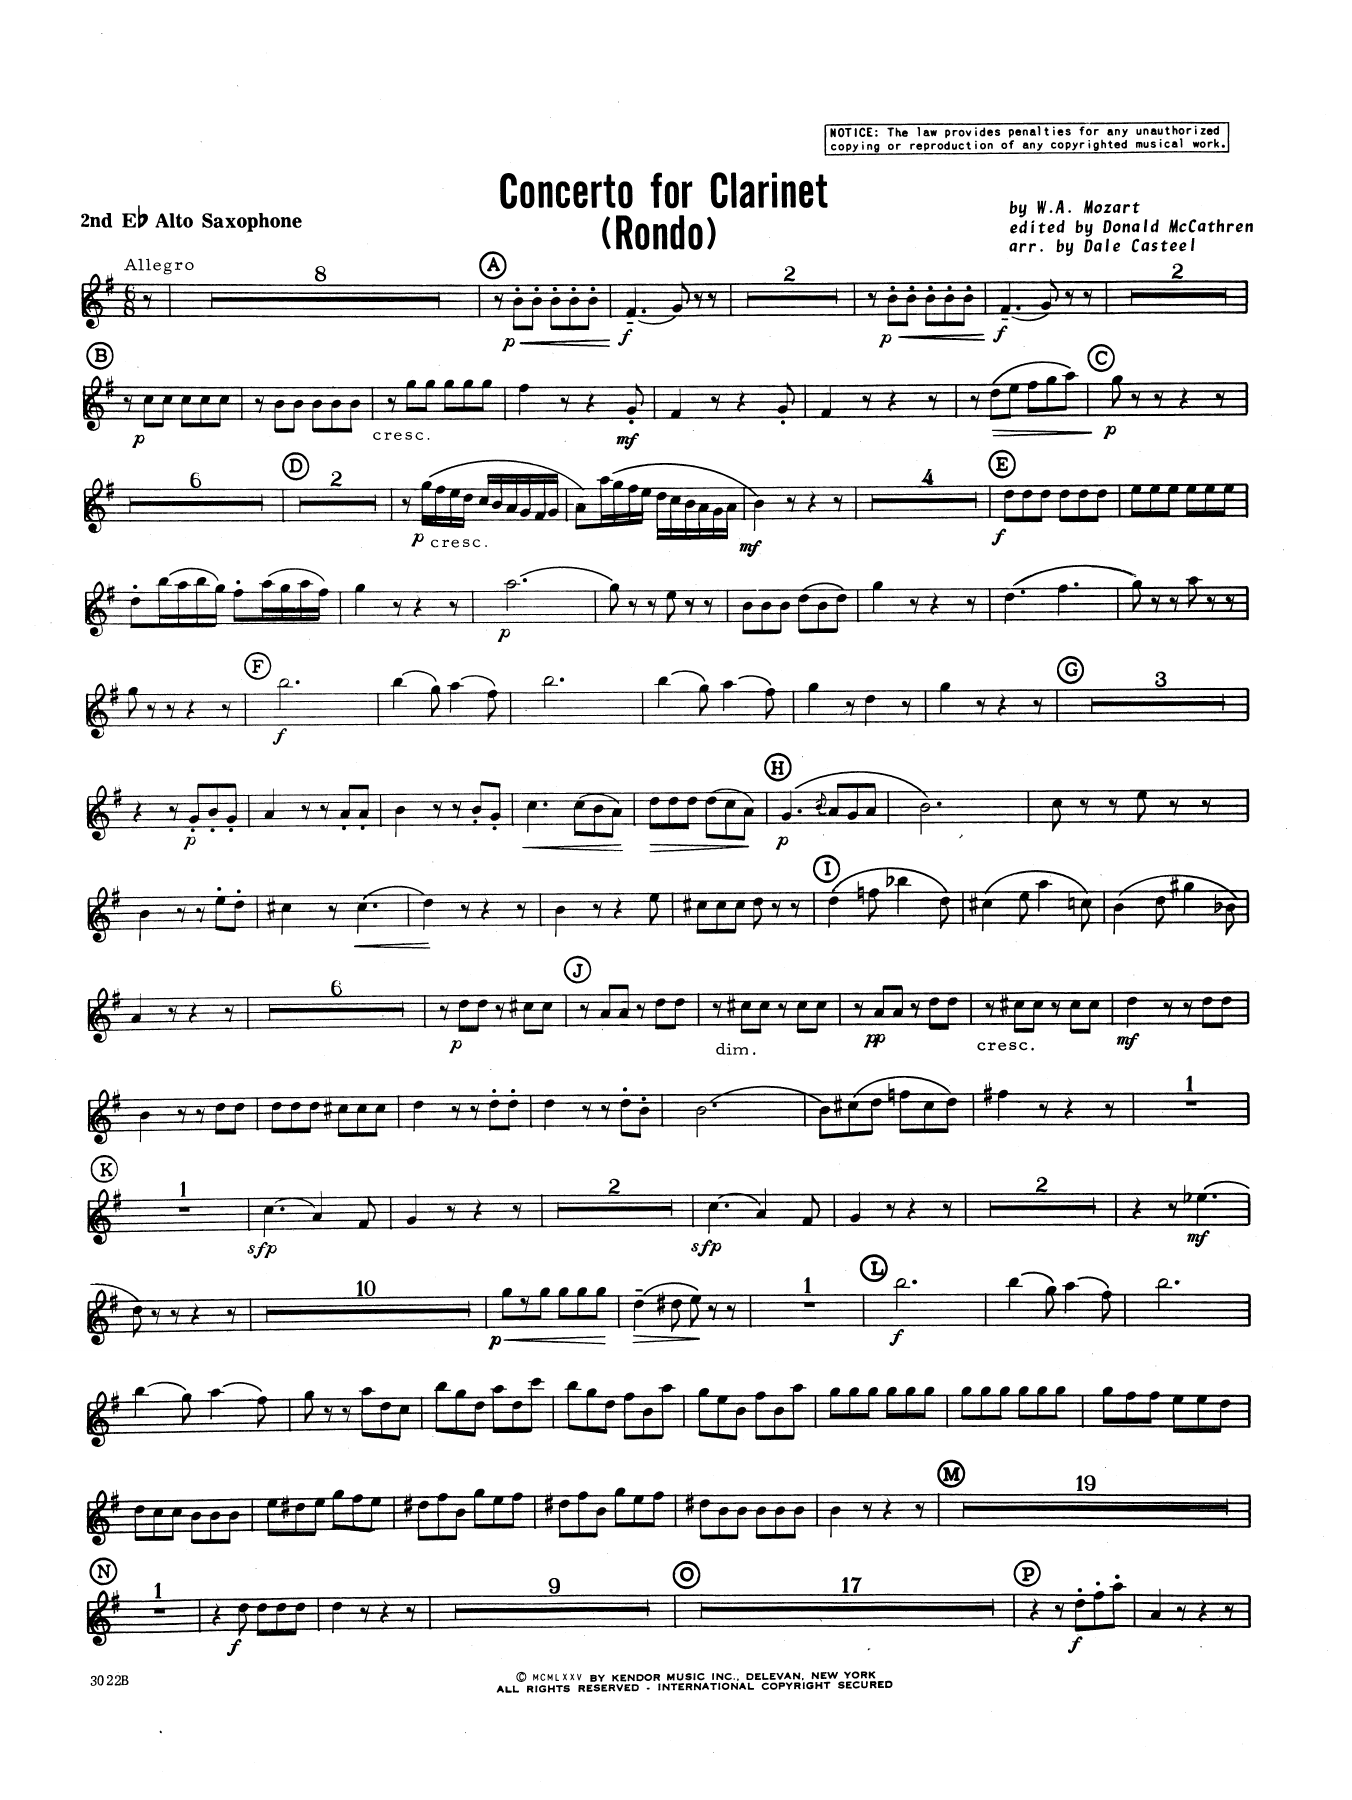 Donald McCathren and Dale Casteel Concerto For Clarinet - Rondo (3rd Movement) - K.622 - 2nd Eb Alto Saxophone sheet music notes printable PDF score